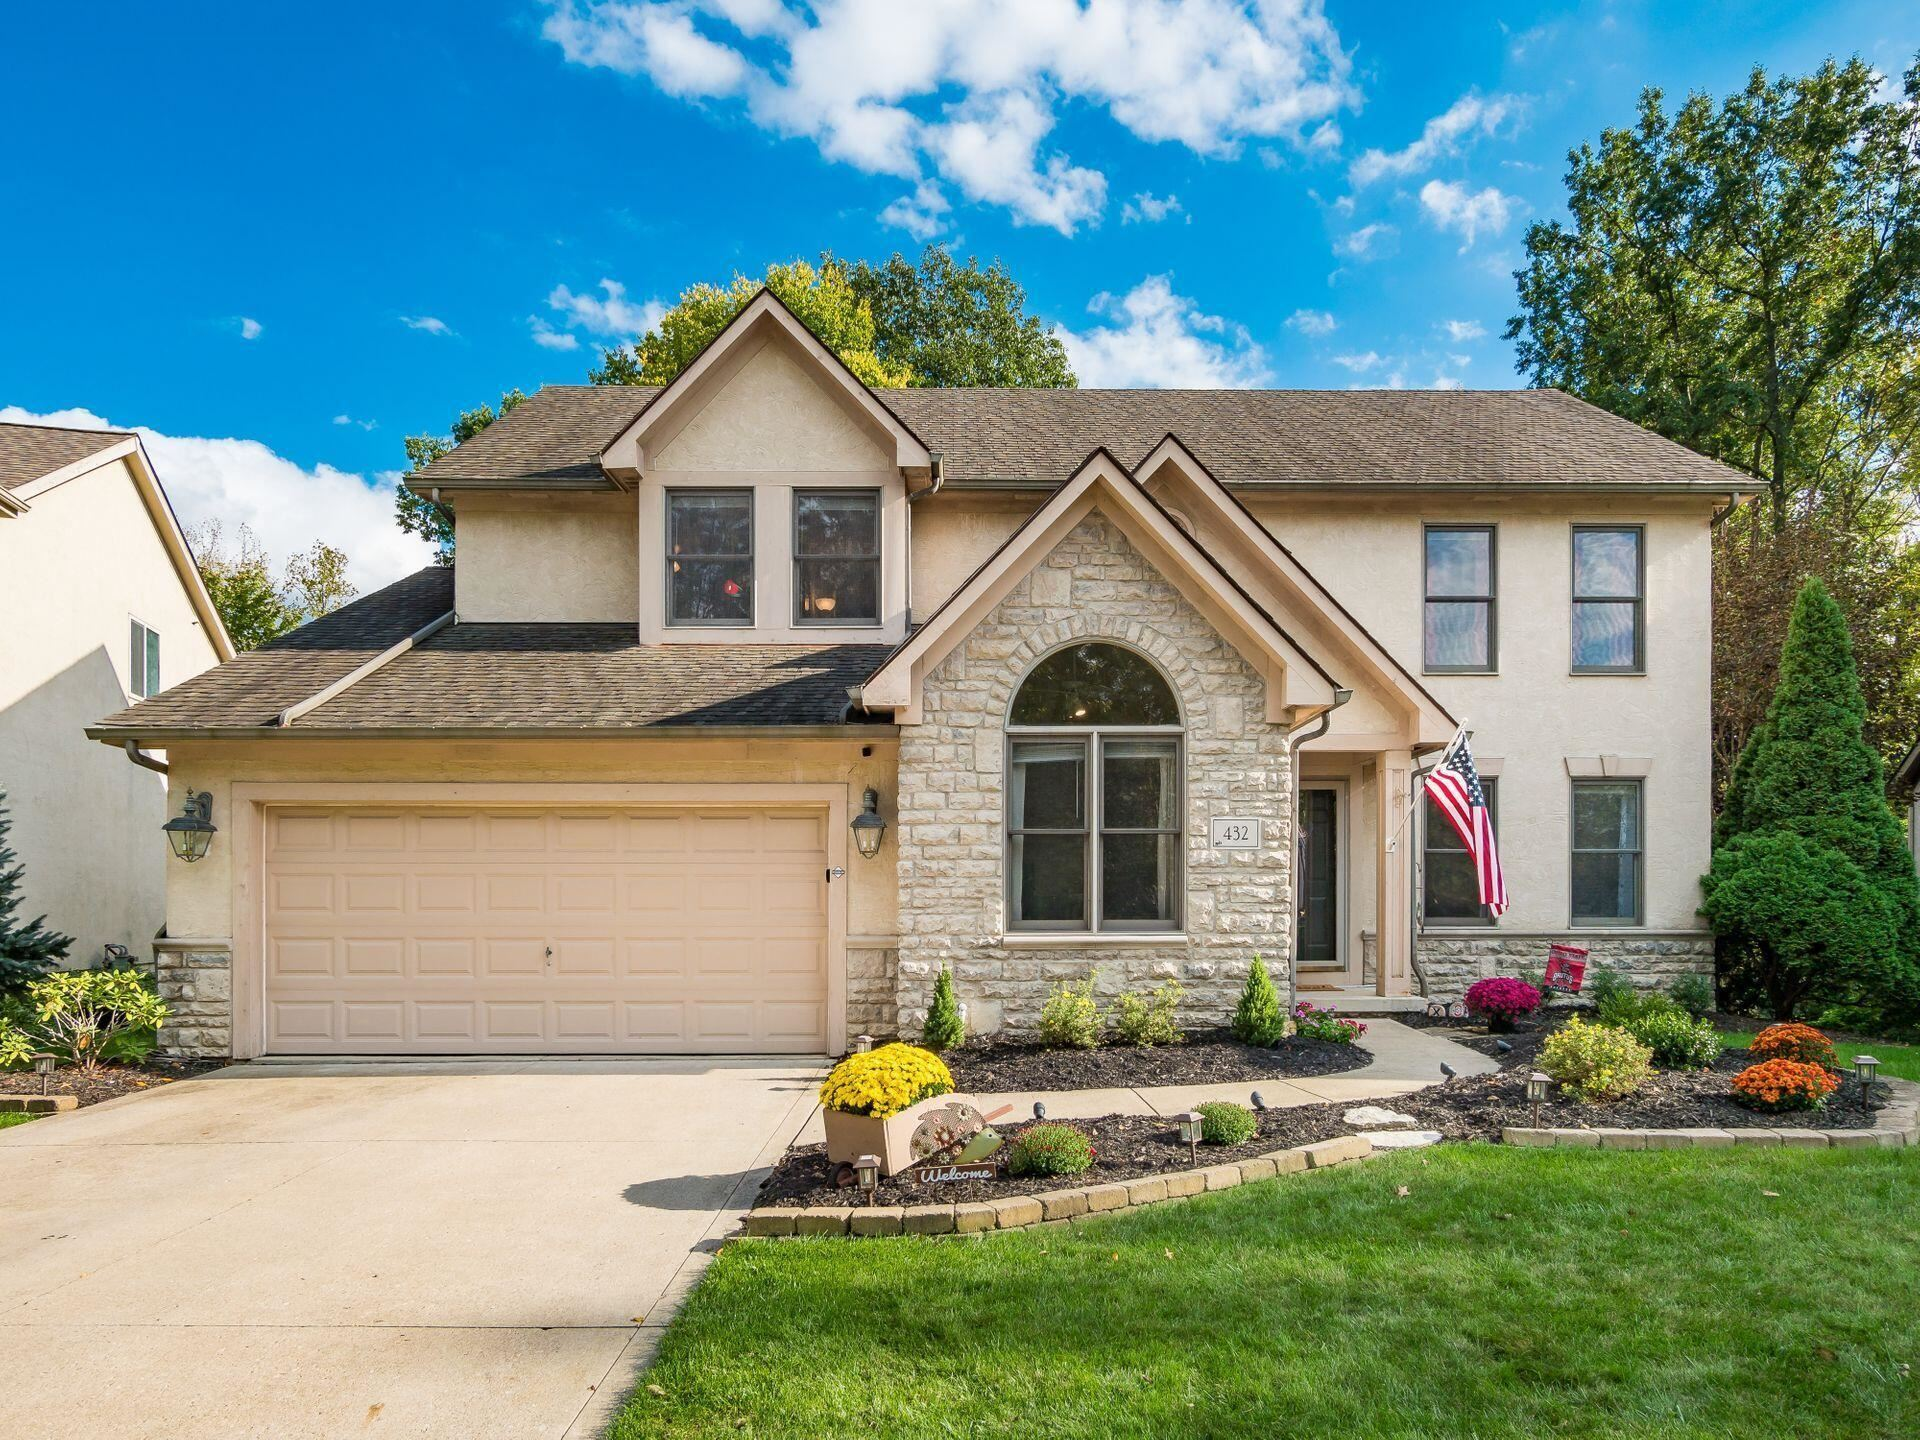 Photo of 432 Maplebrooke Drive E, Westerville, OH 43082 (MLS # 221040691)